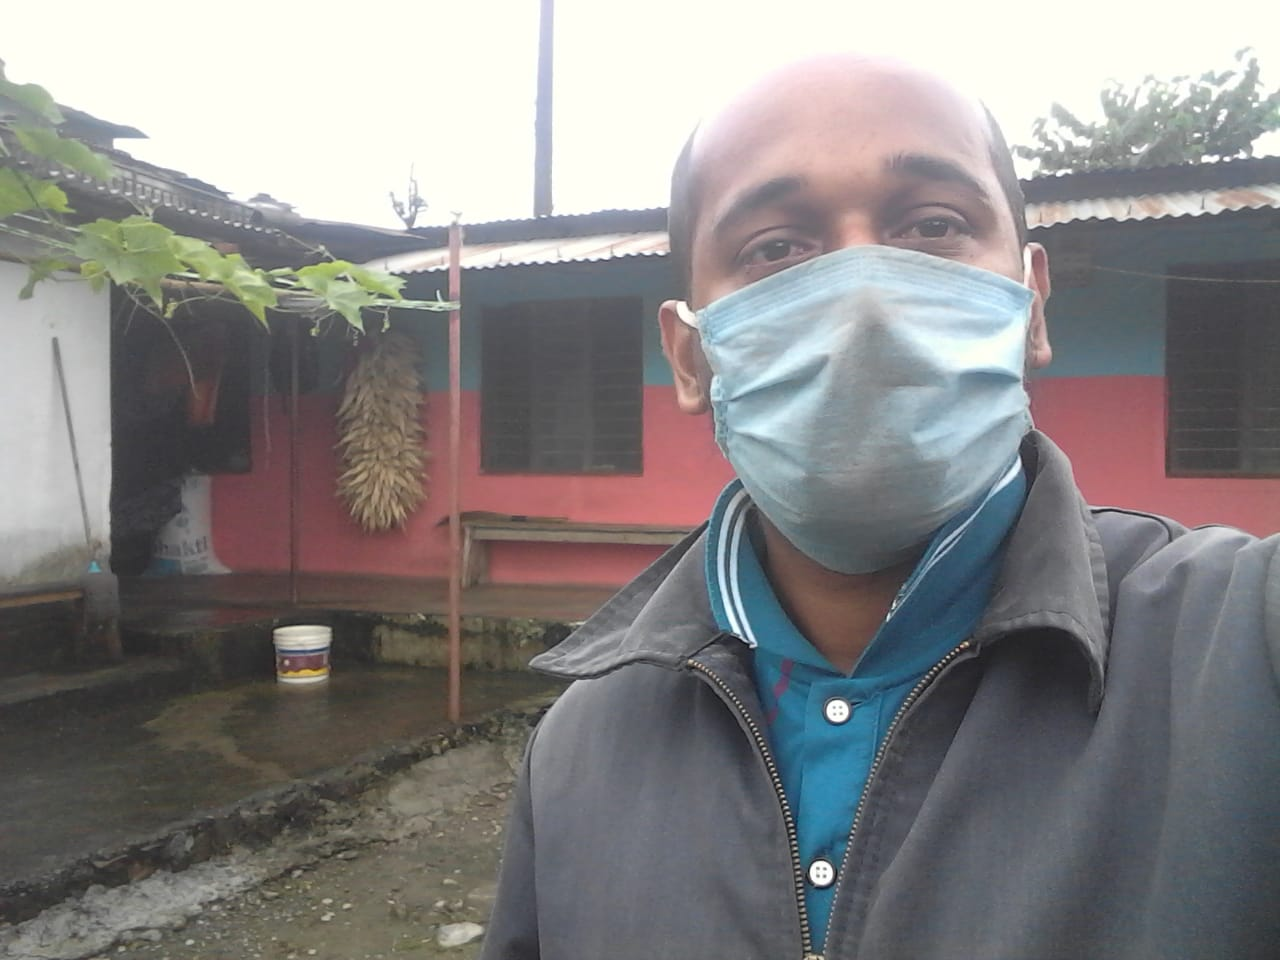 Today I Visiting Gagangauda Place of Pokhara